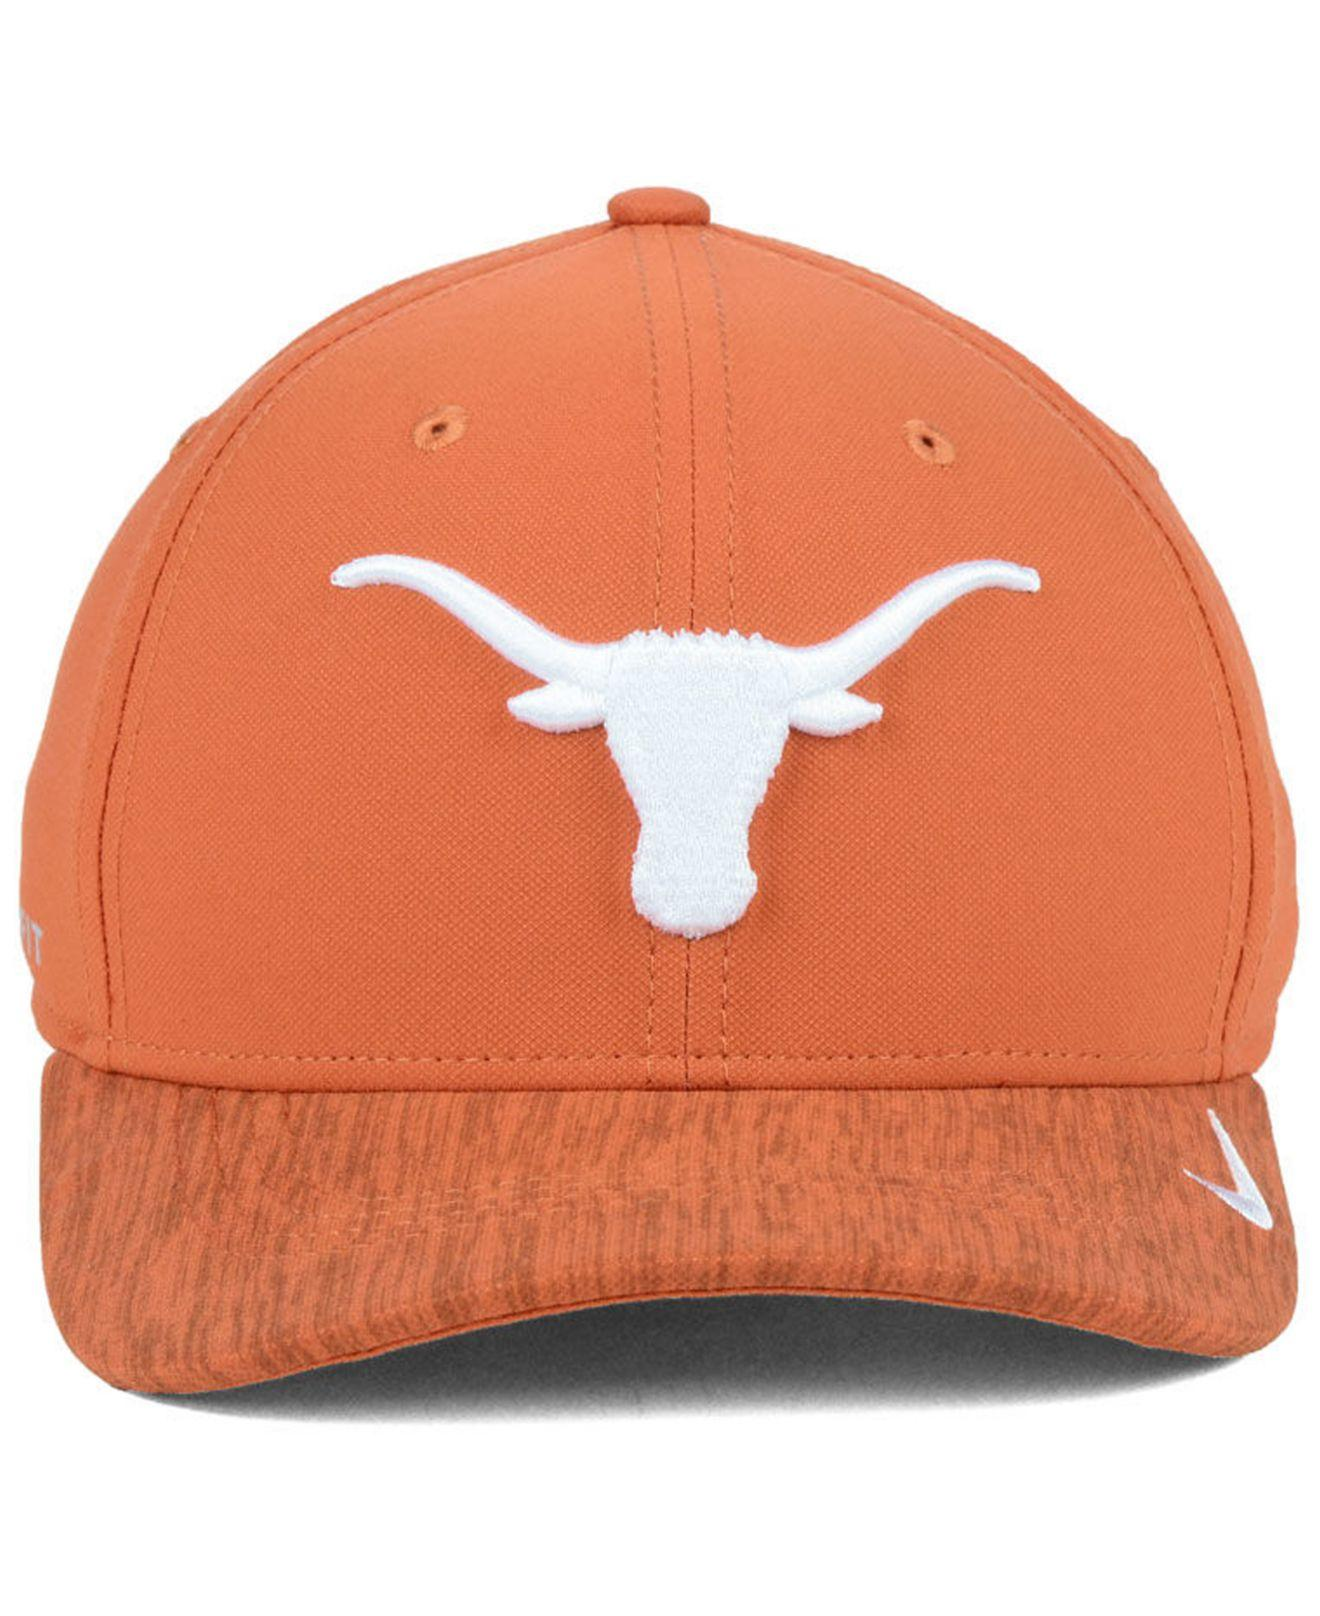 low priced 85744 530bf Lyst - Nike Texas Longhorns Arobill Swoosh Flex Stretch Fitted Cap in Orange  for Men